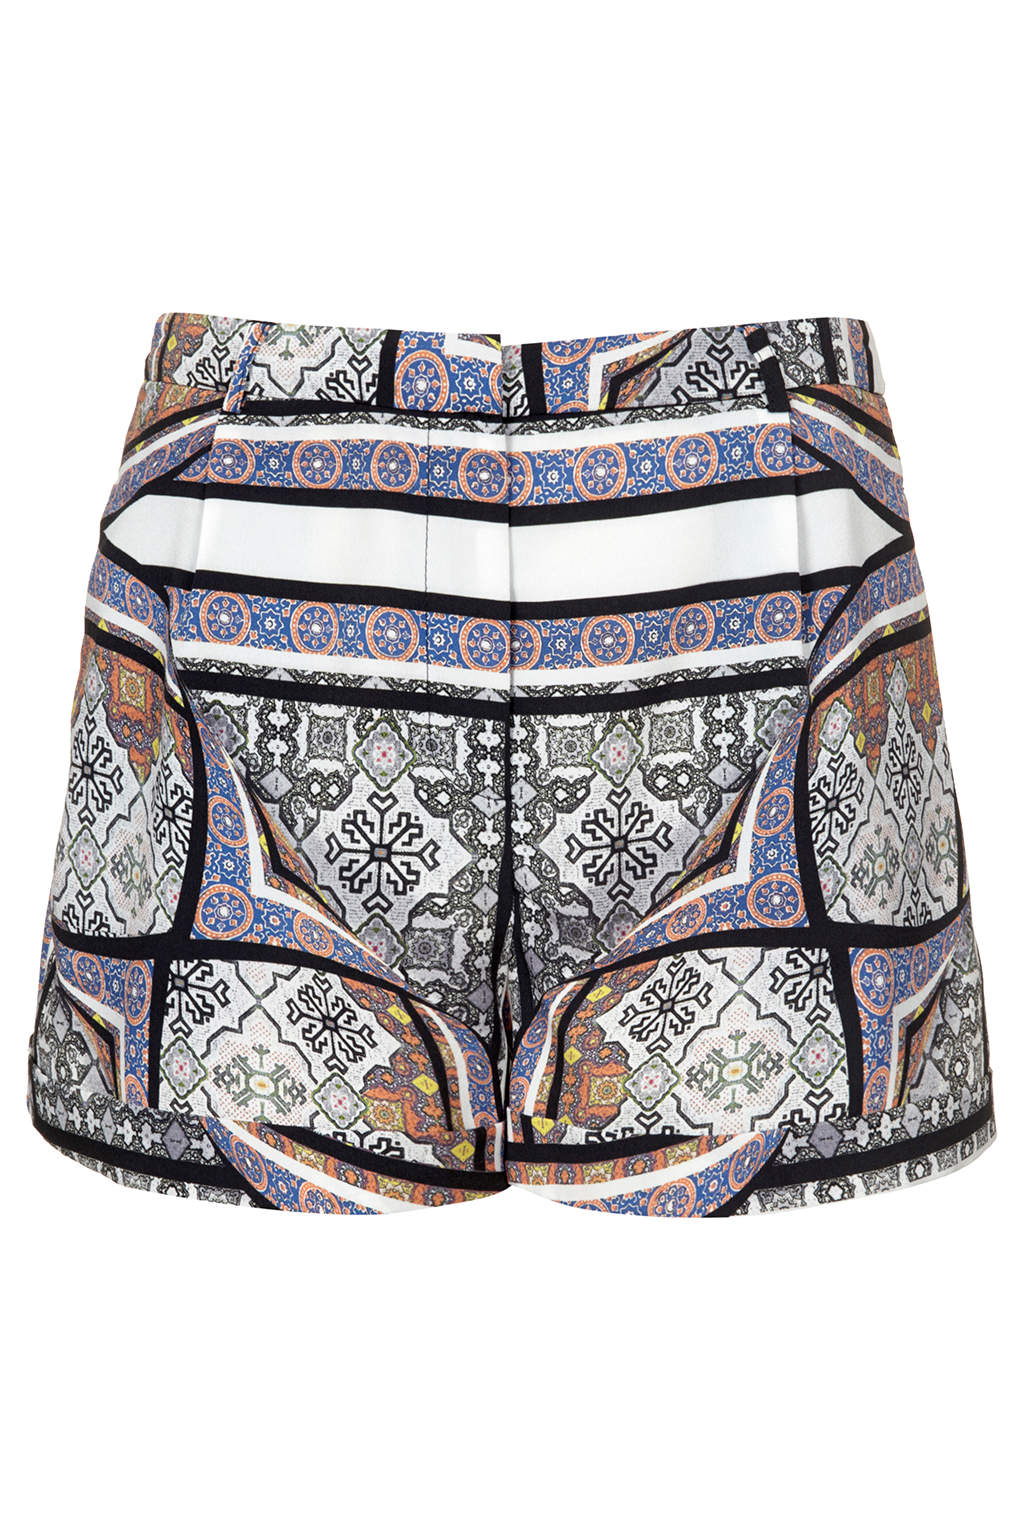 http://www.topshop.com/en/tsuk/product/clothing-427/shorts-448/tile-scarf-print-shorts-2806745?bi=1&ps=200